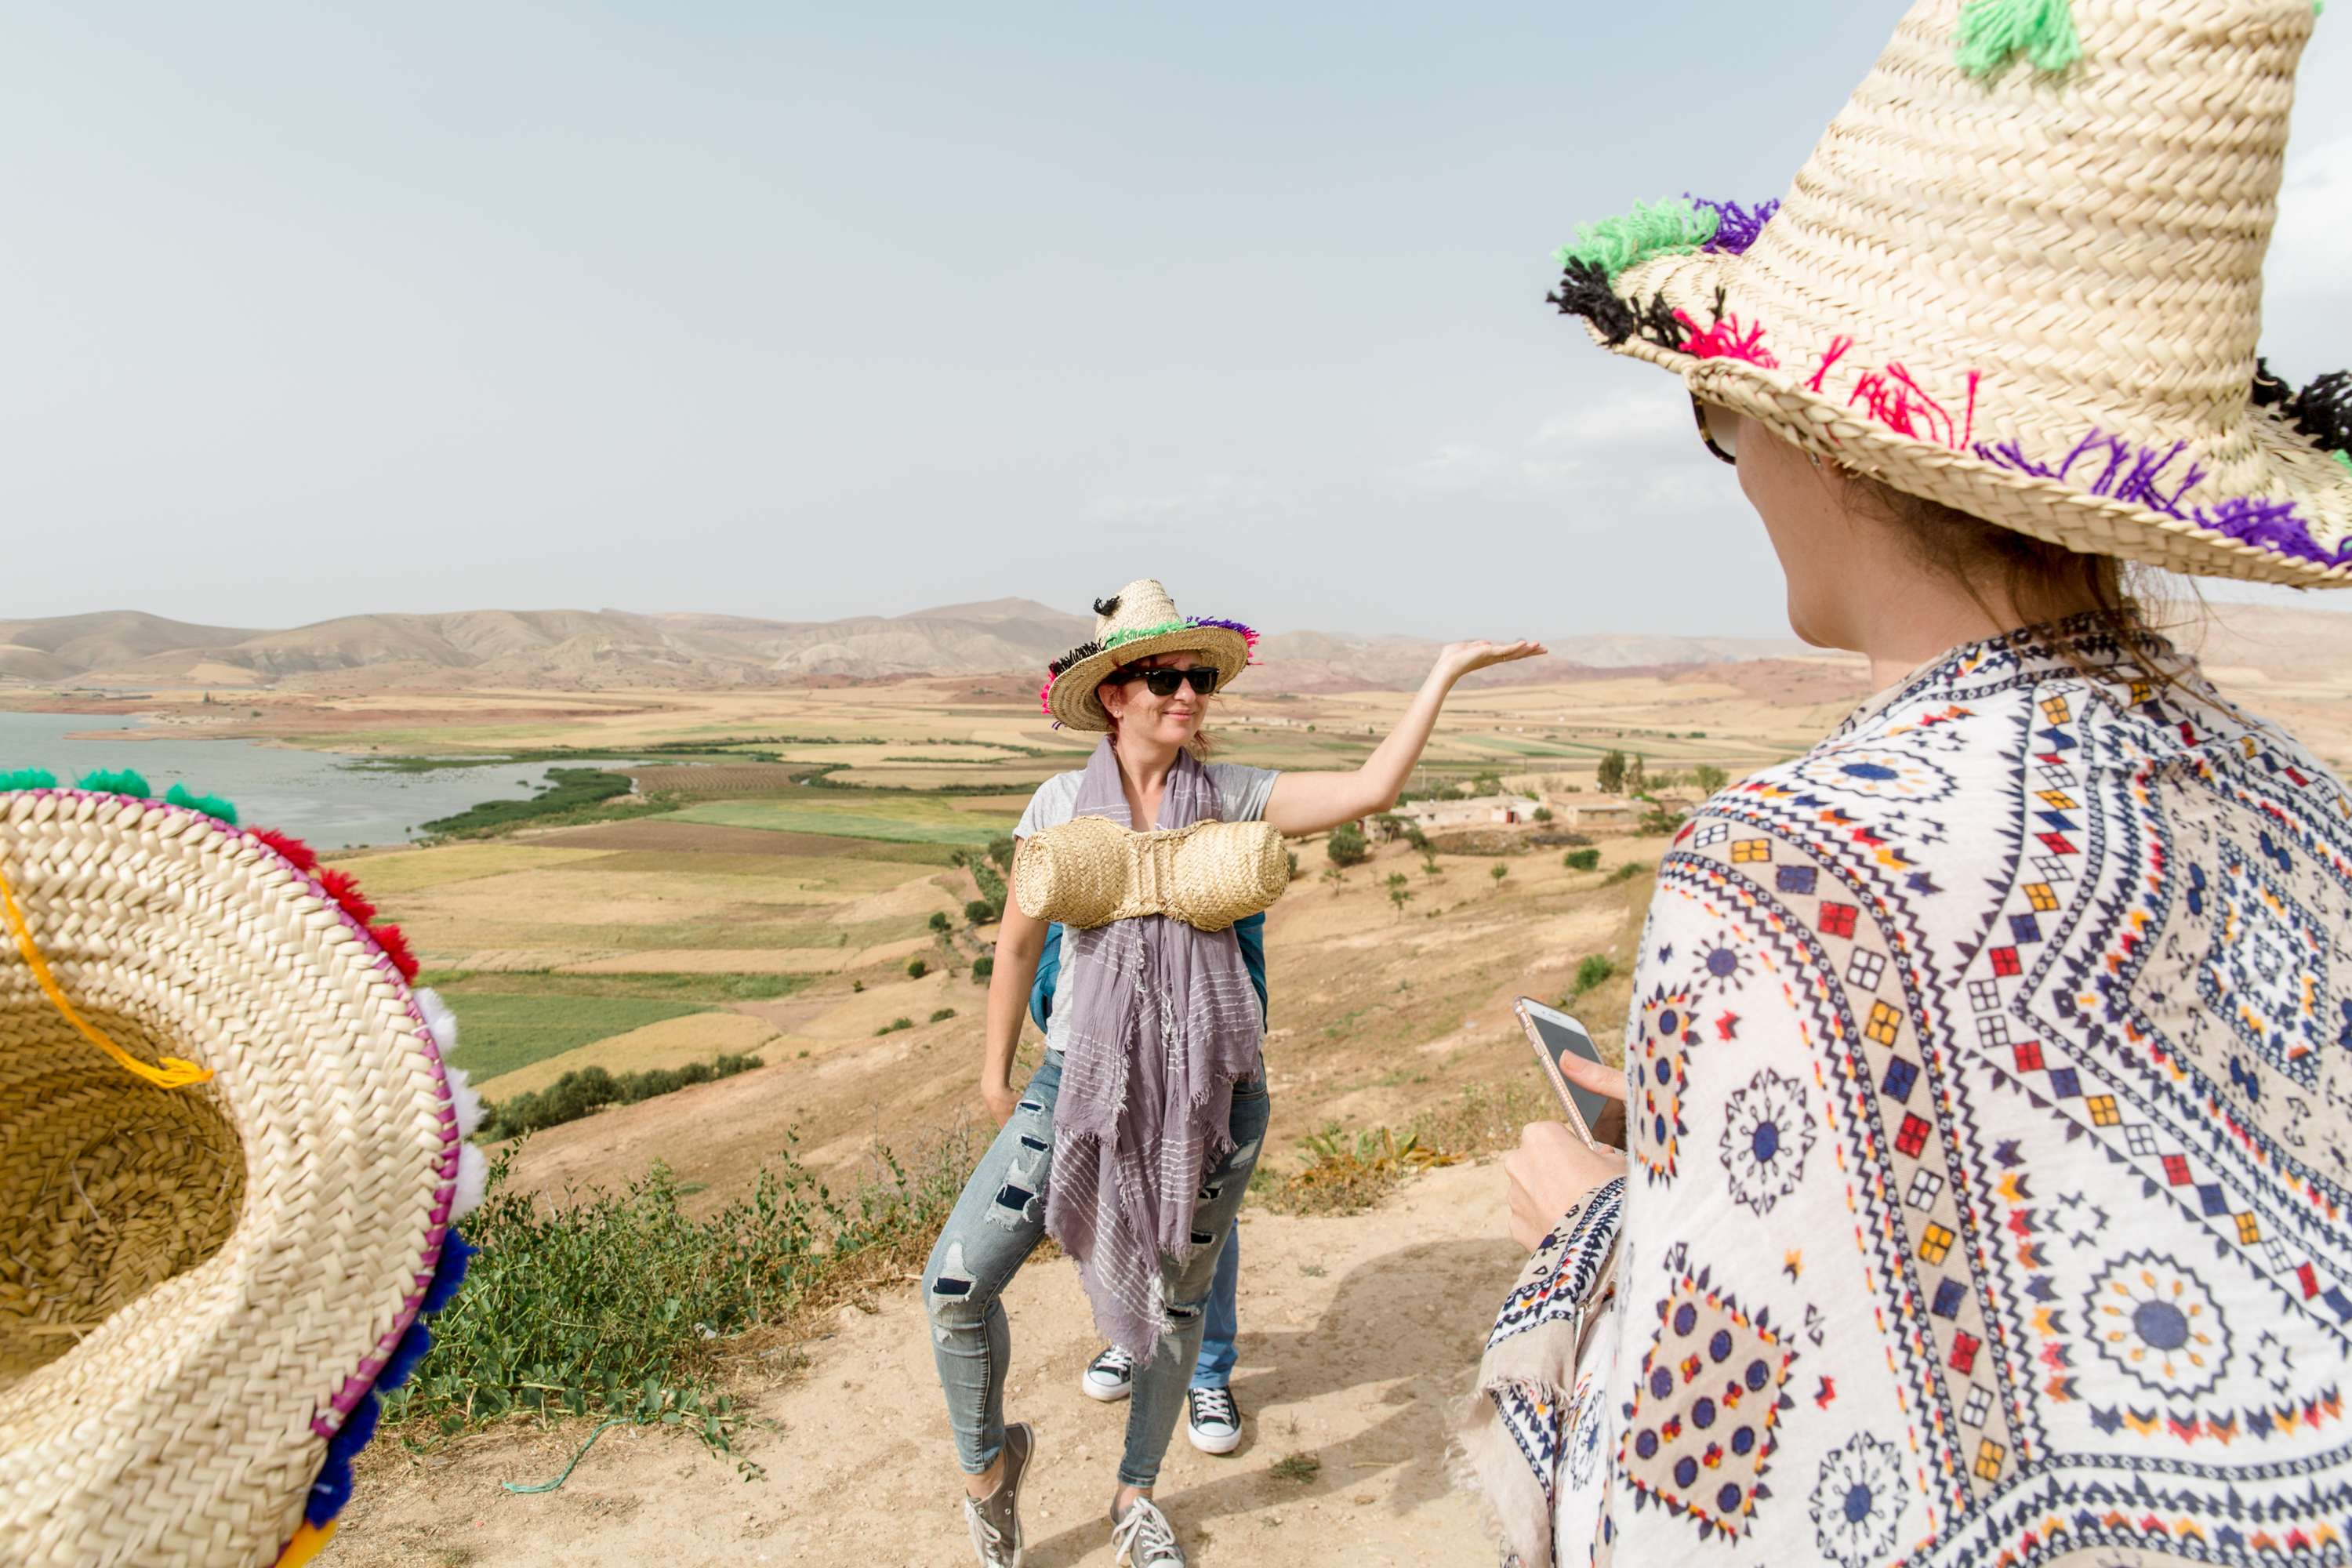 Intrepid Travel - Morocco Marketing Content | The Dots